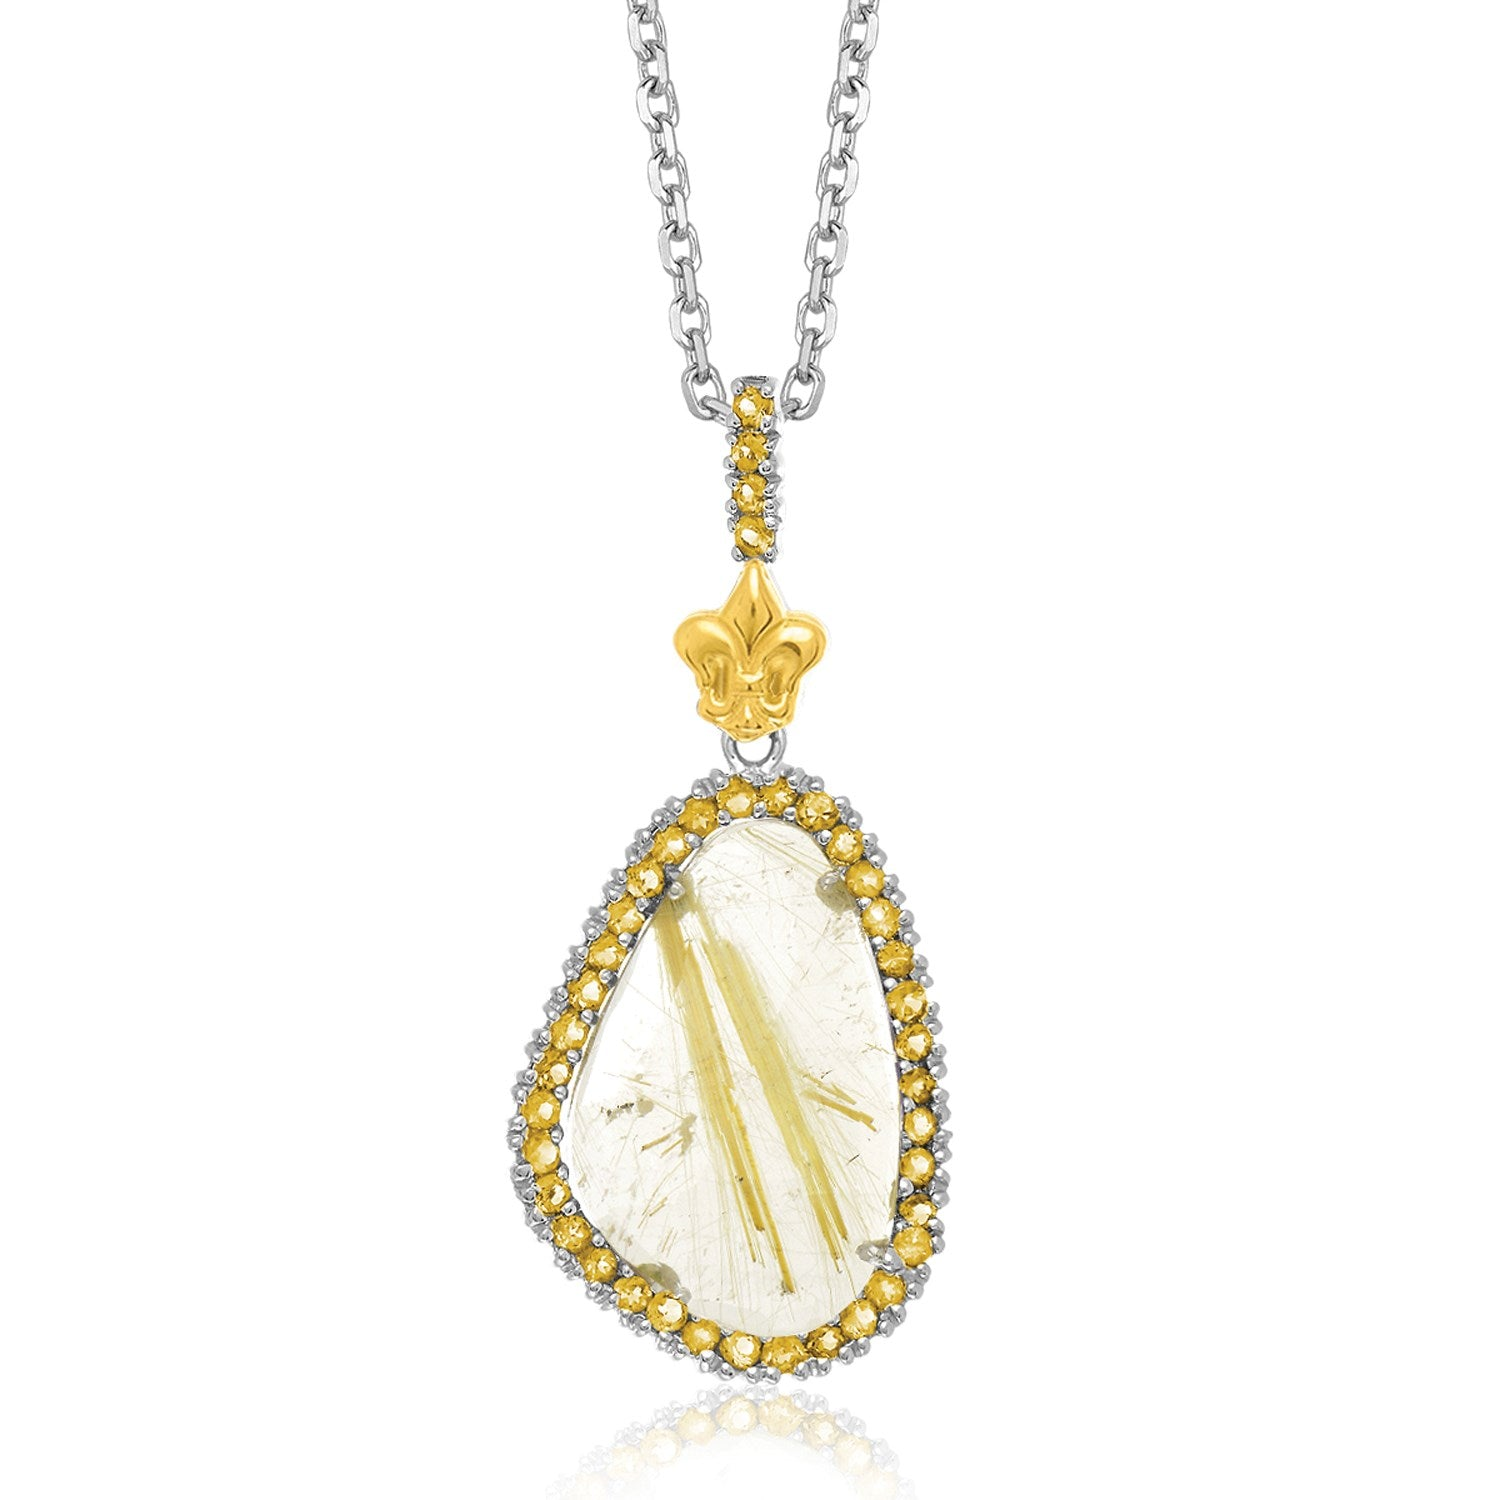 Distinctive Luxury London Style 18K Yellow Gold & Sterling Silver Golden Rutilated Quartz Pendant